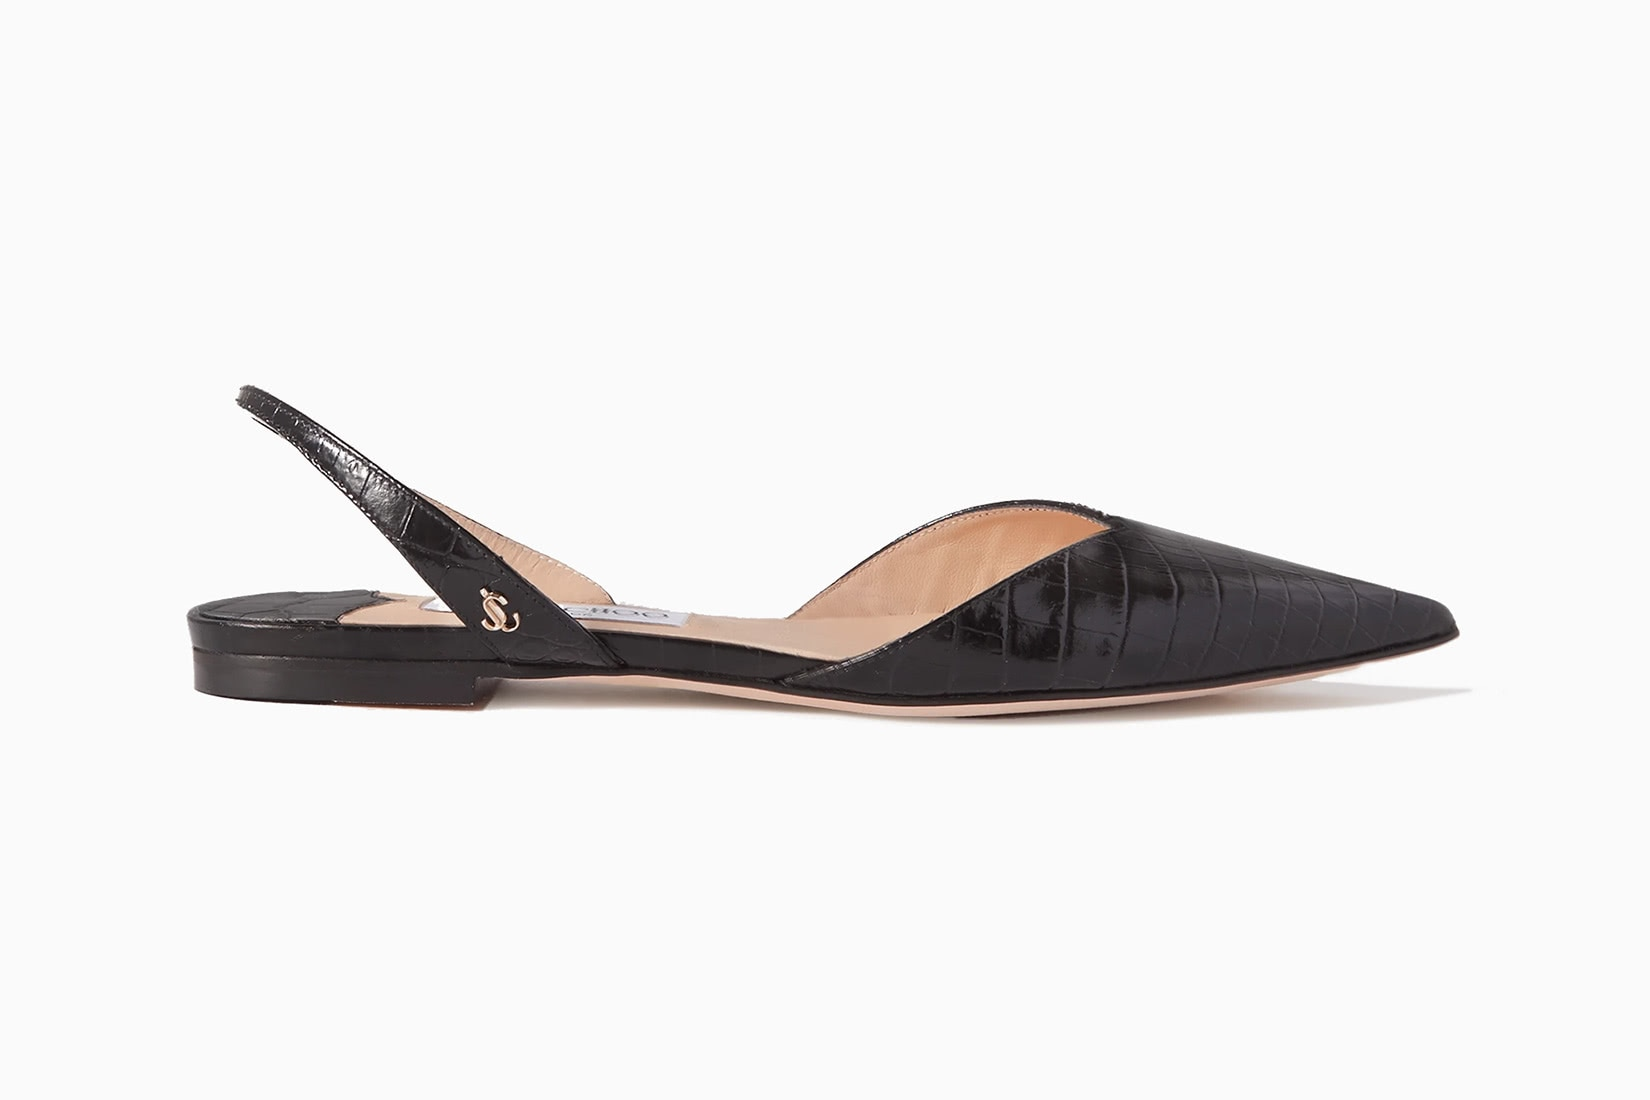 most comfortable flats women dressy jimmy choo thandi review - Luxe Digital